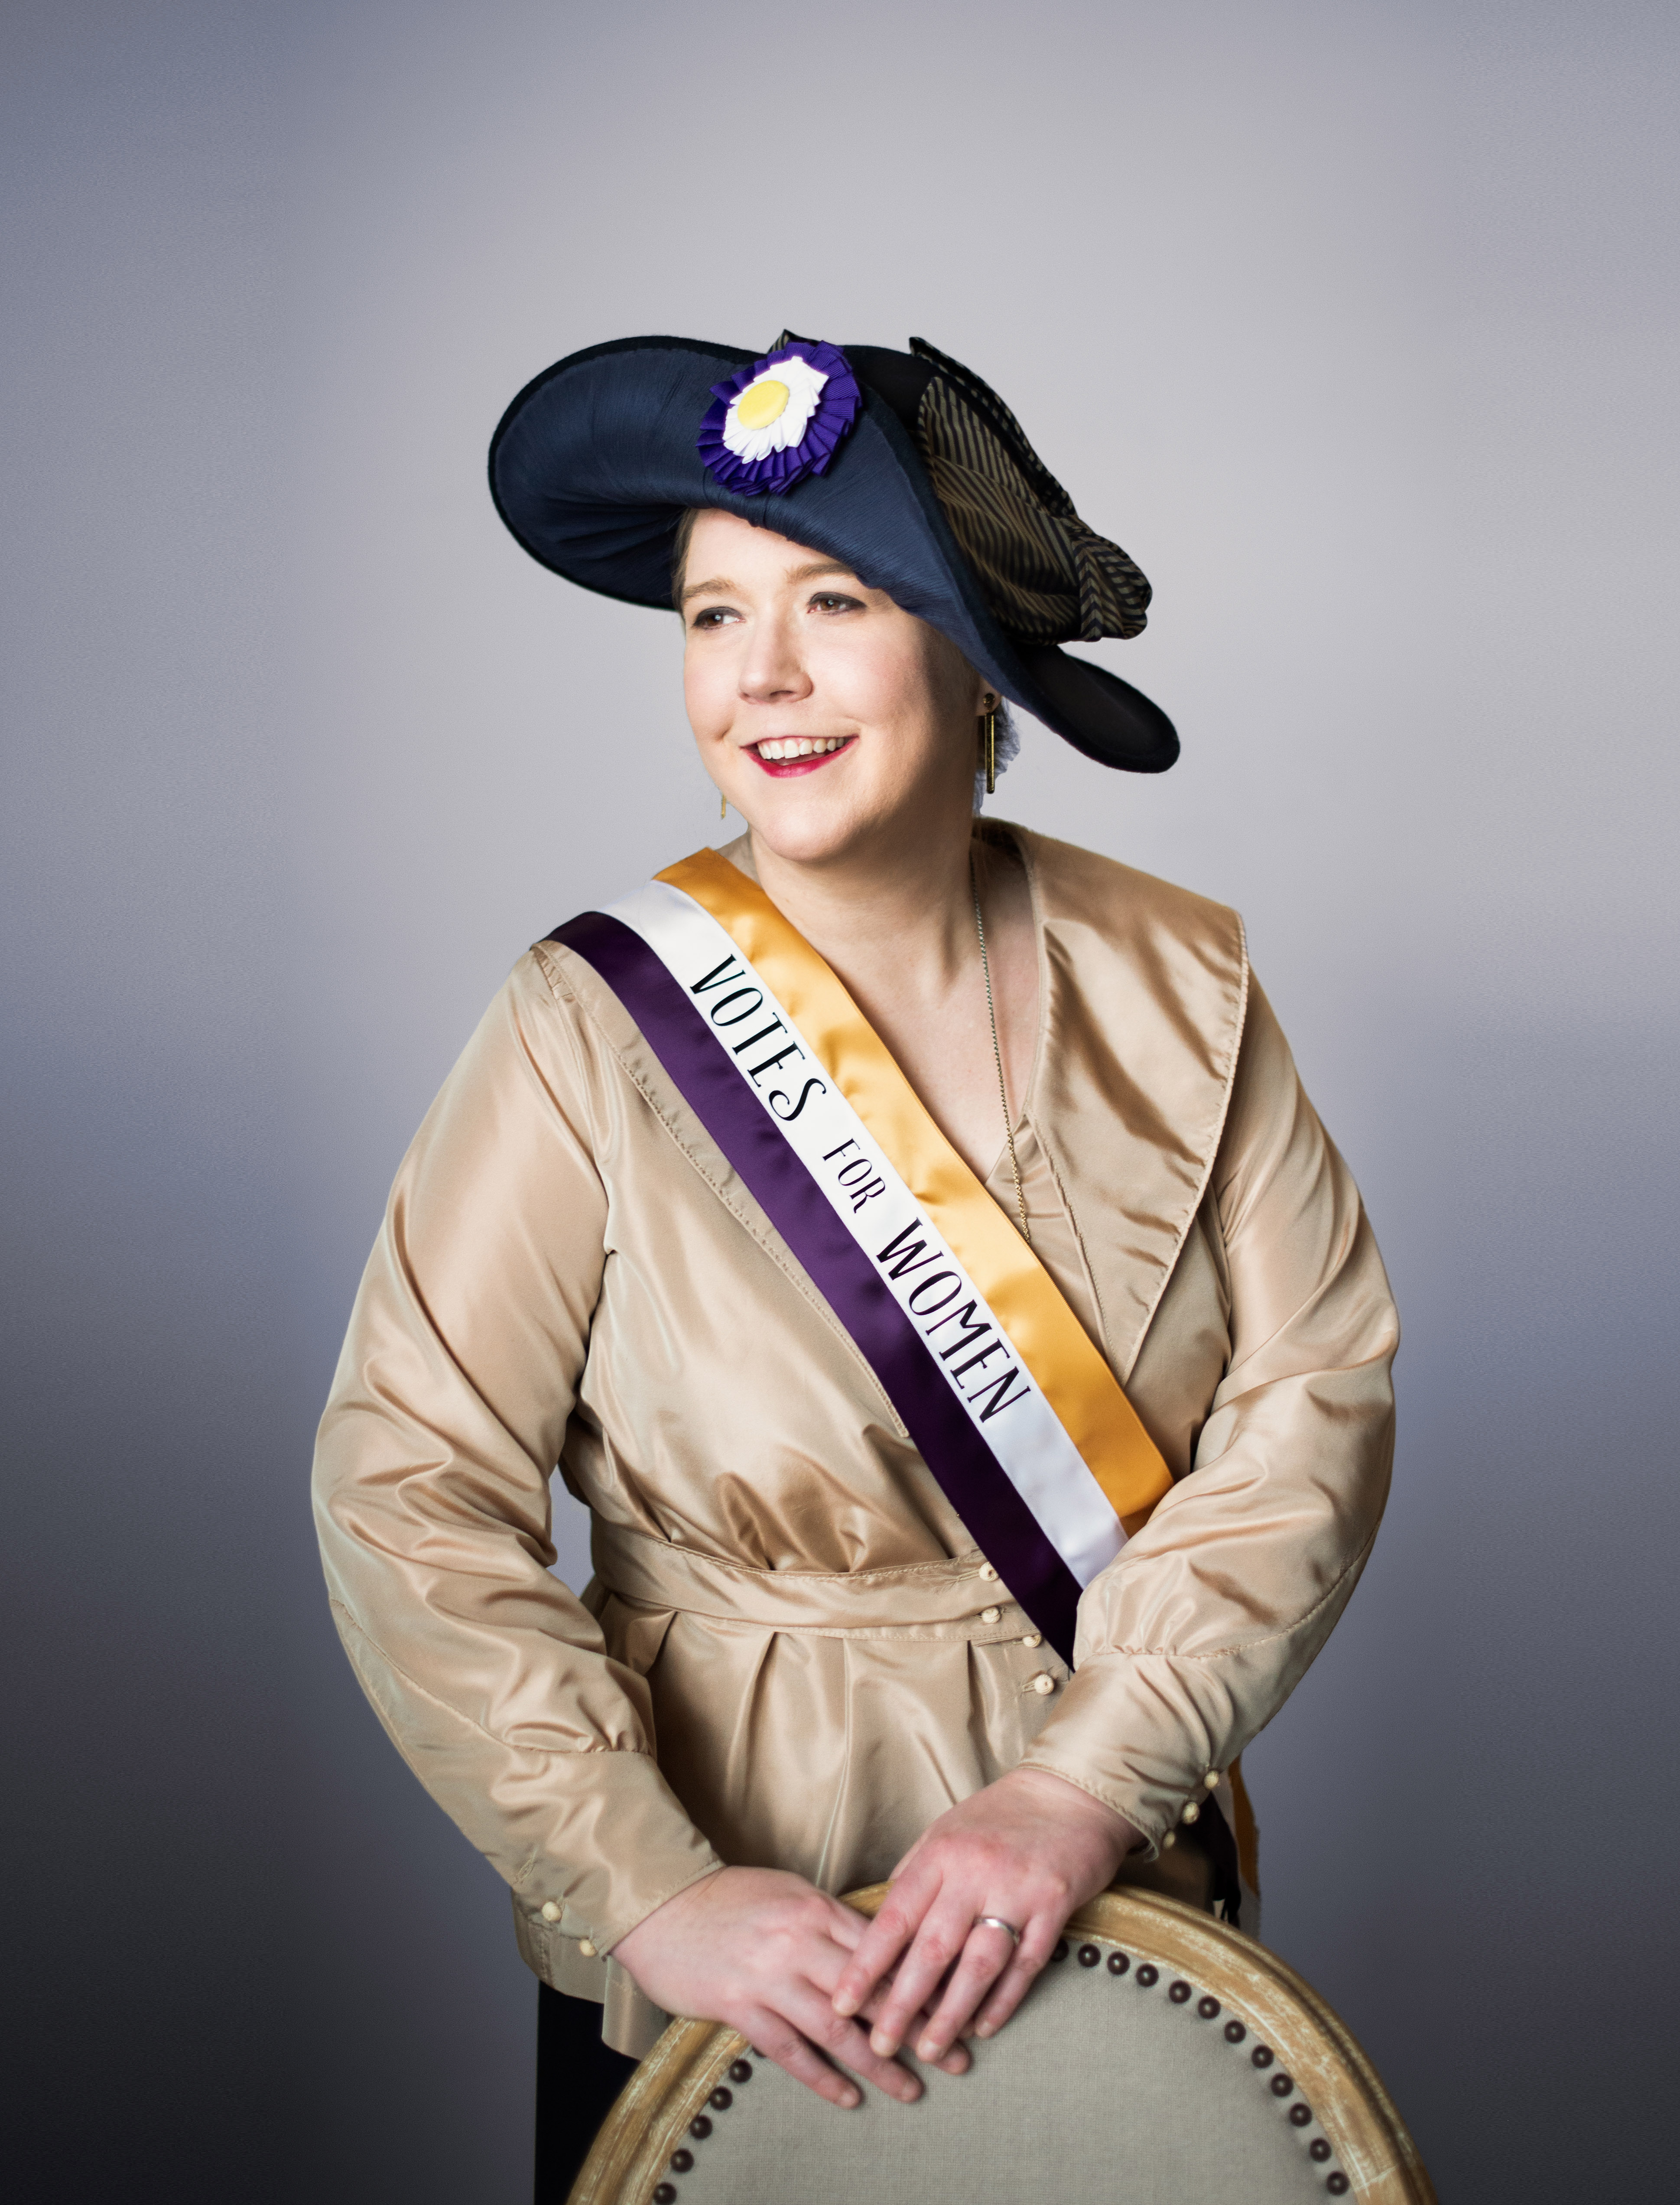 Centennial of Suffrage: A Concert Commemorating the 19th Amendment